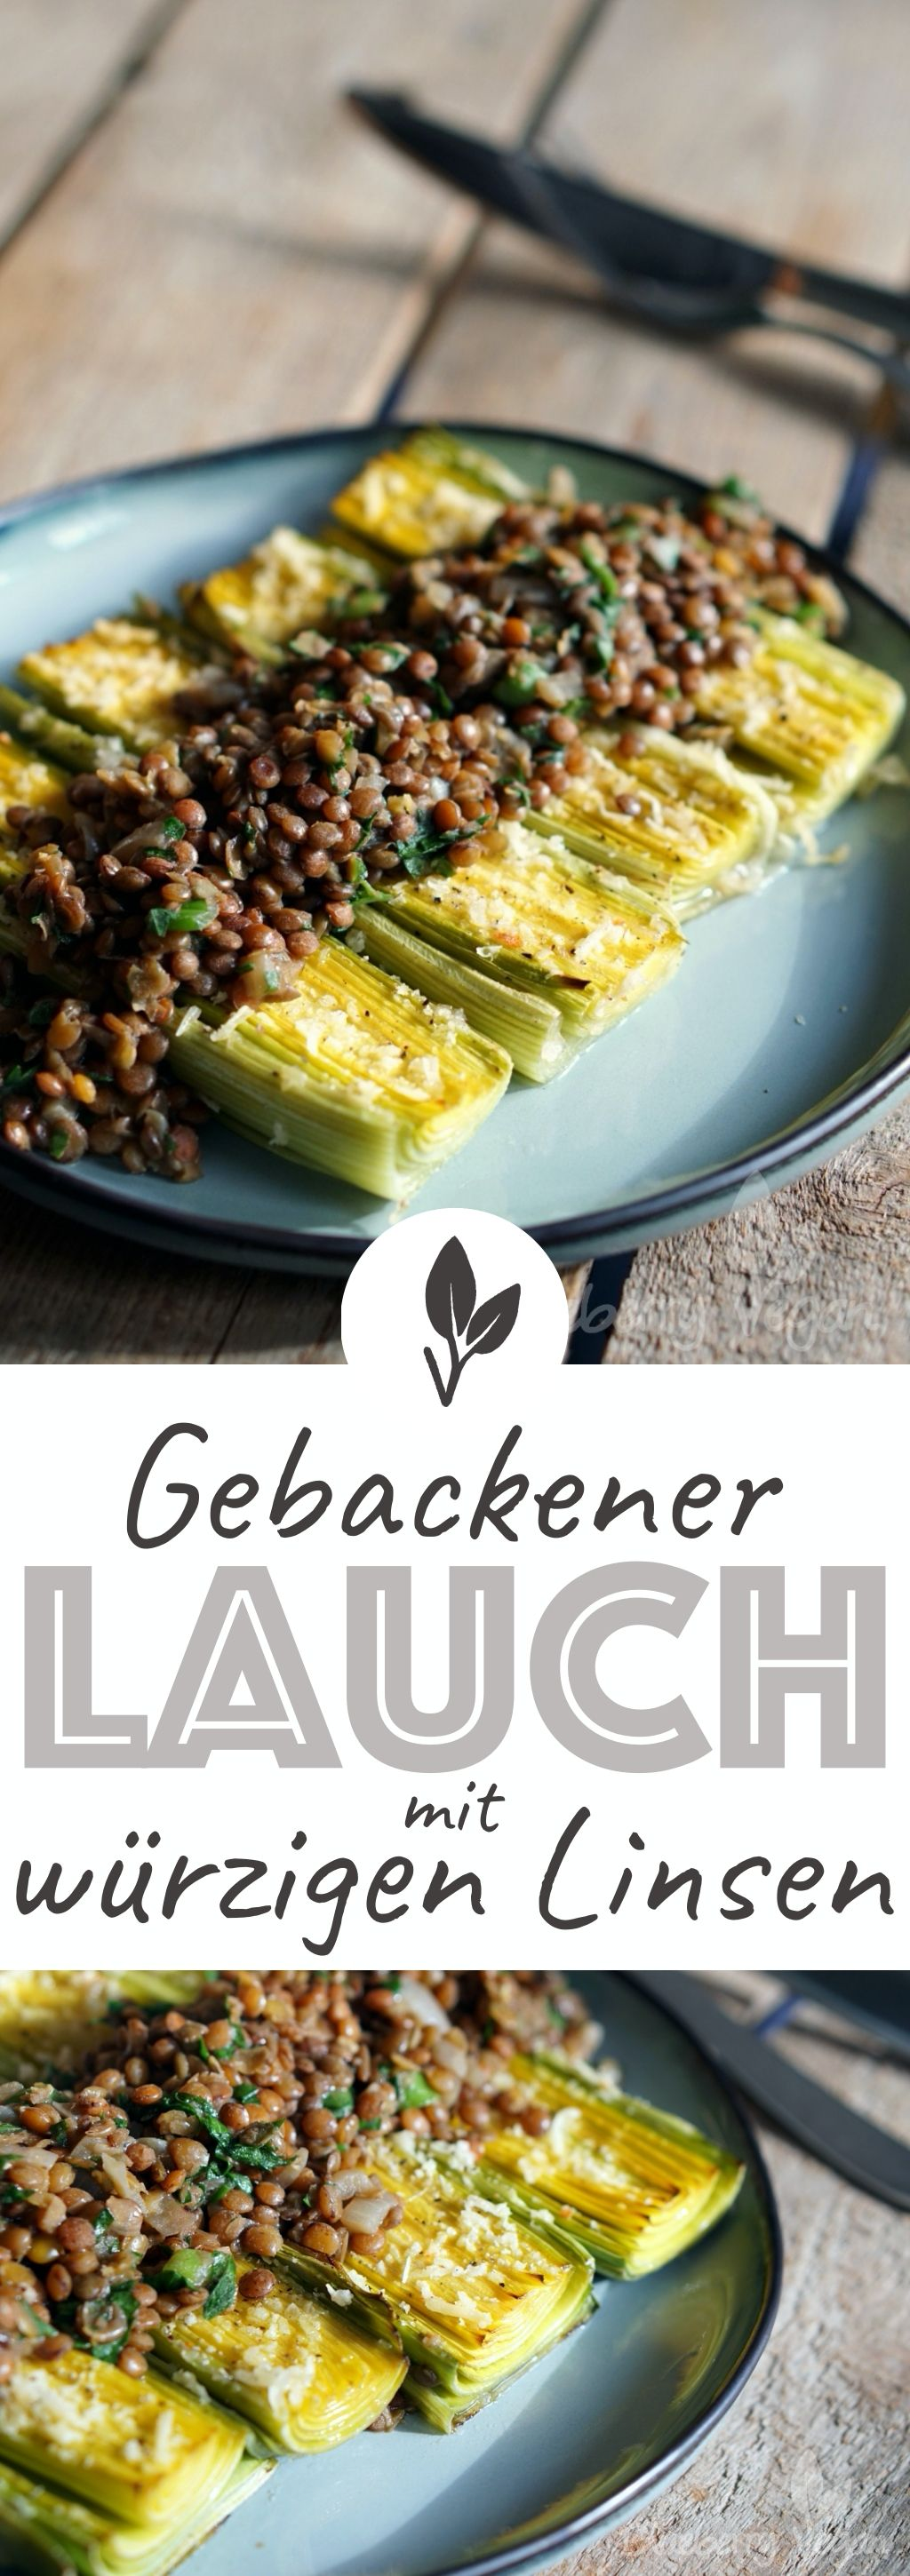 Photo of Baked leek with spicy lentils